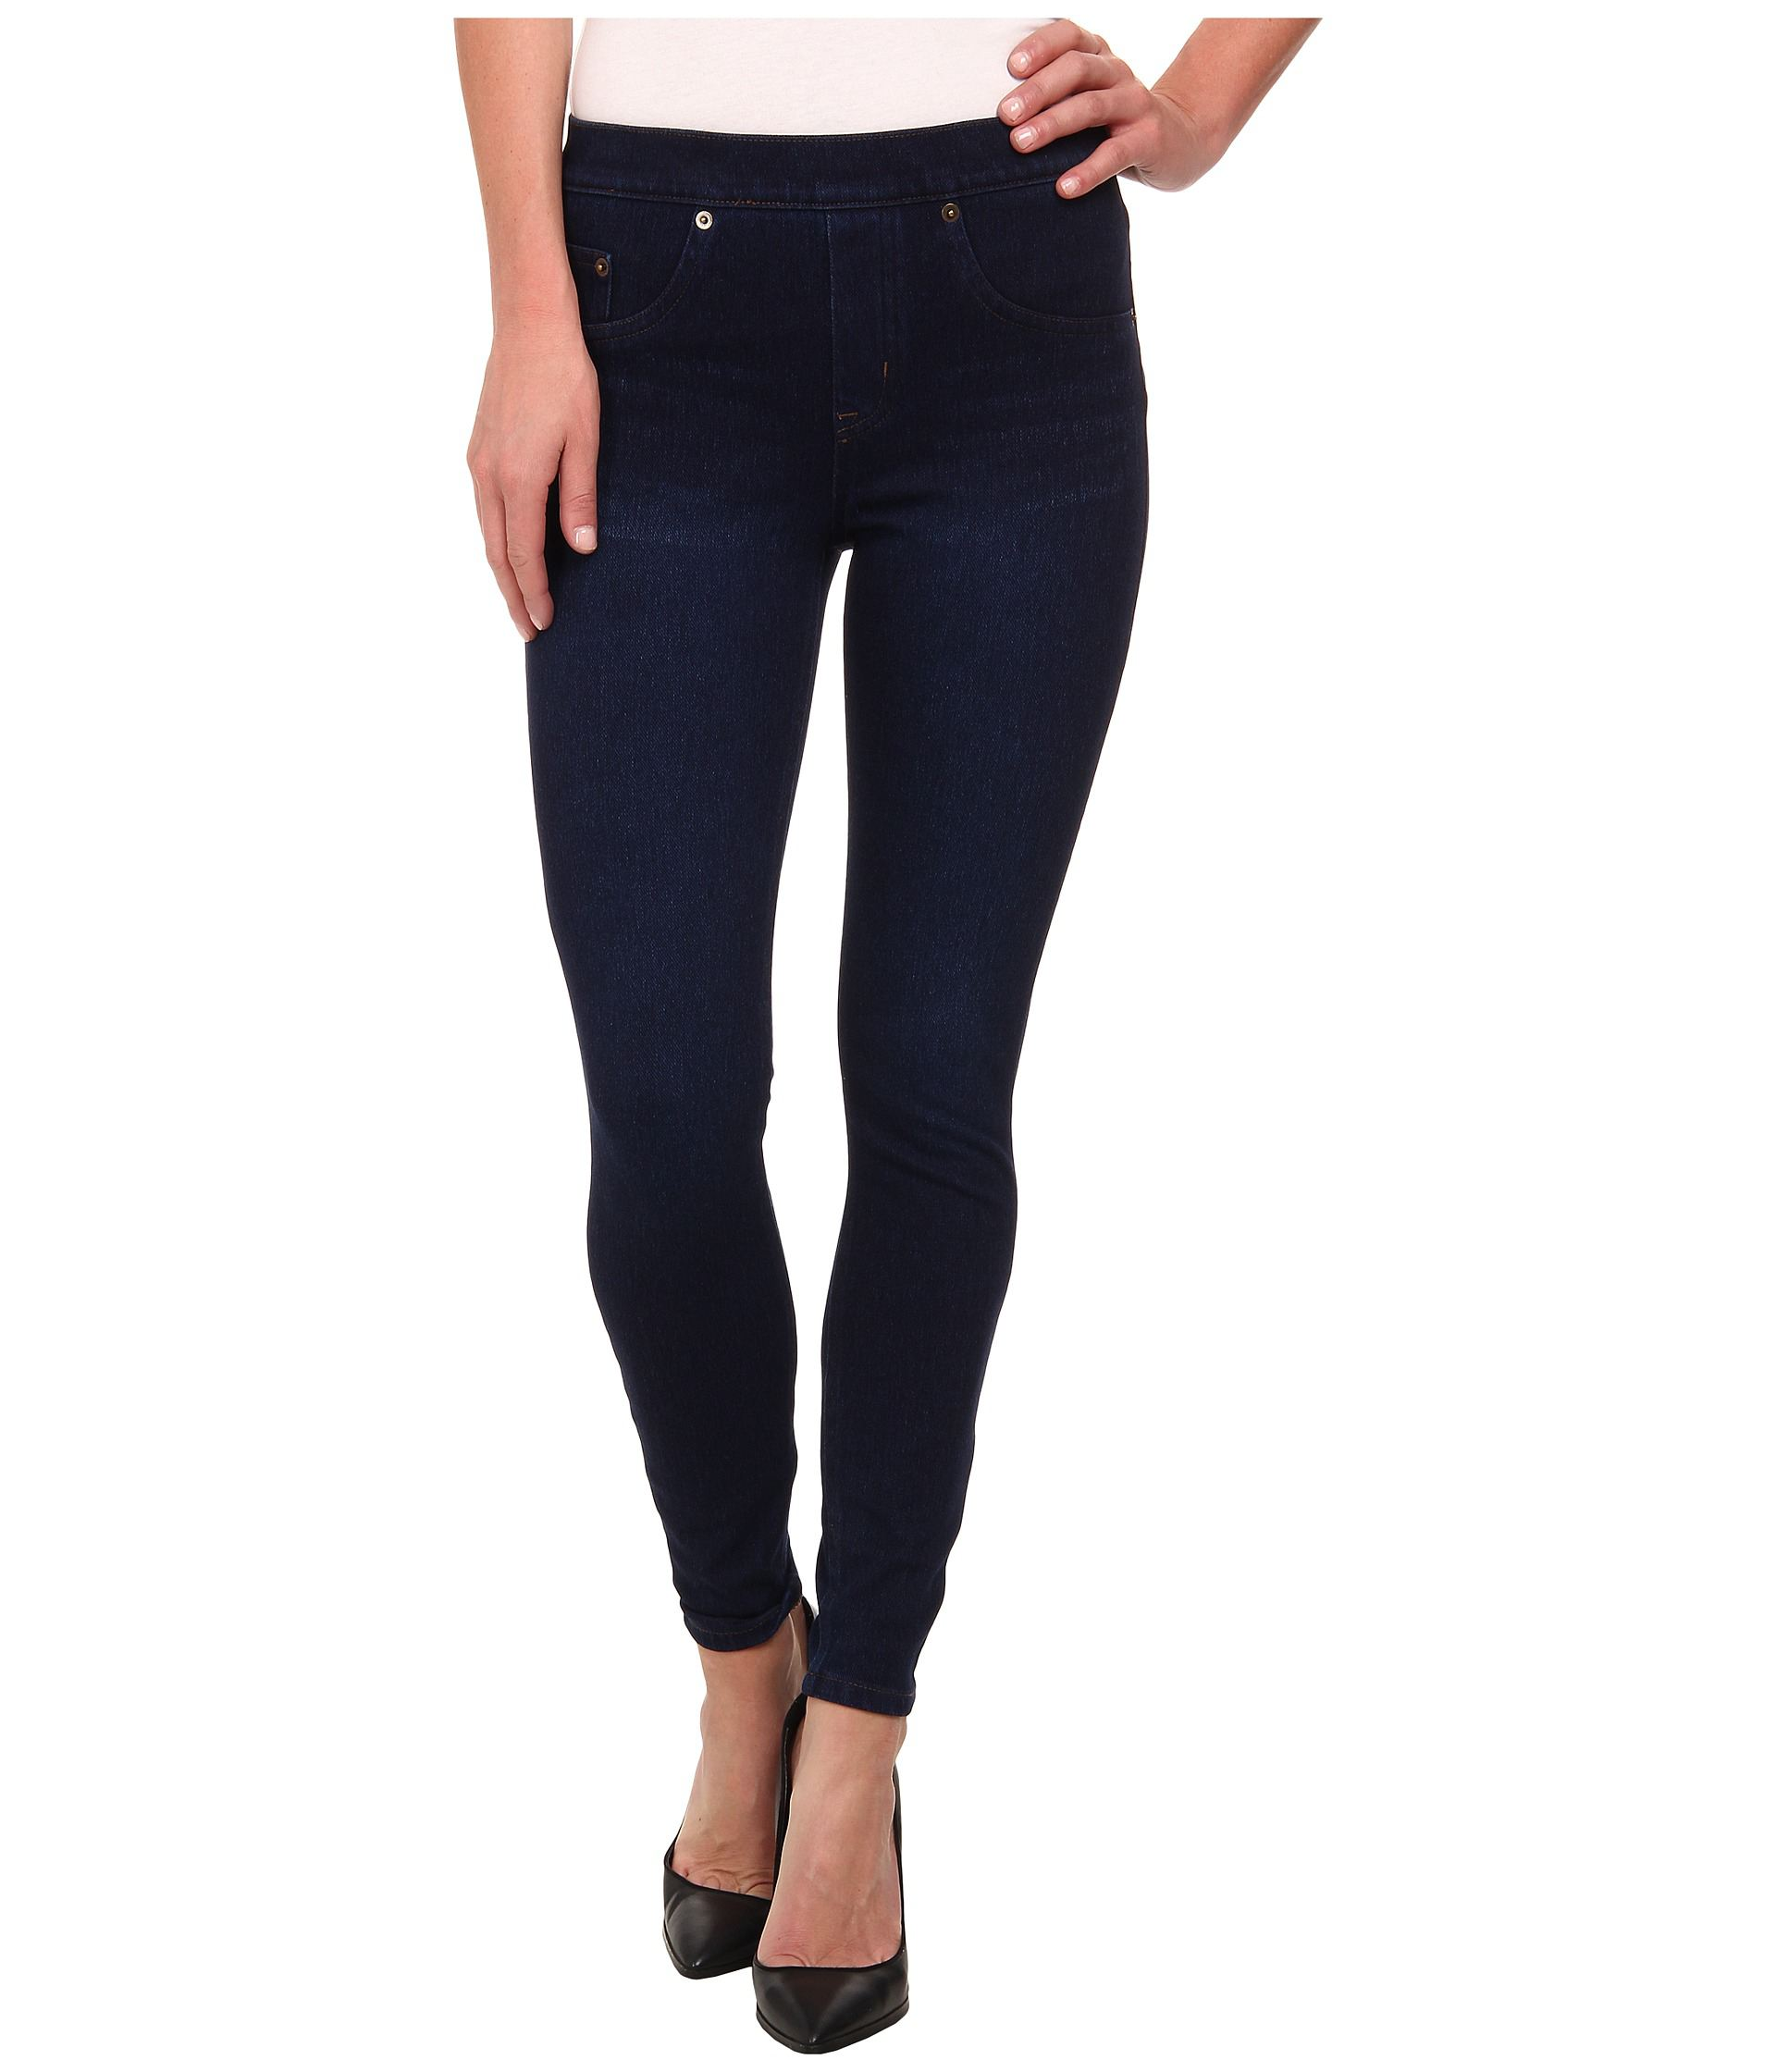 99f17db6f9190 5 Body Shaping Jeans that Act Like Shapewear